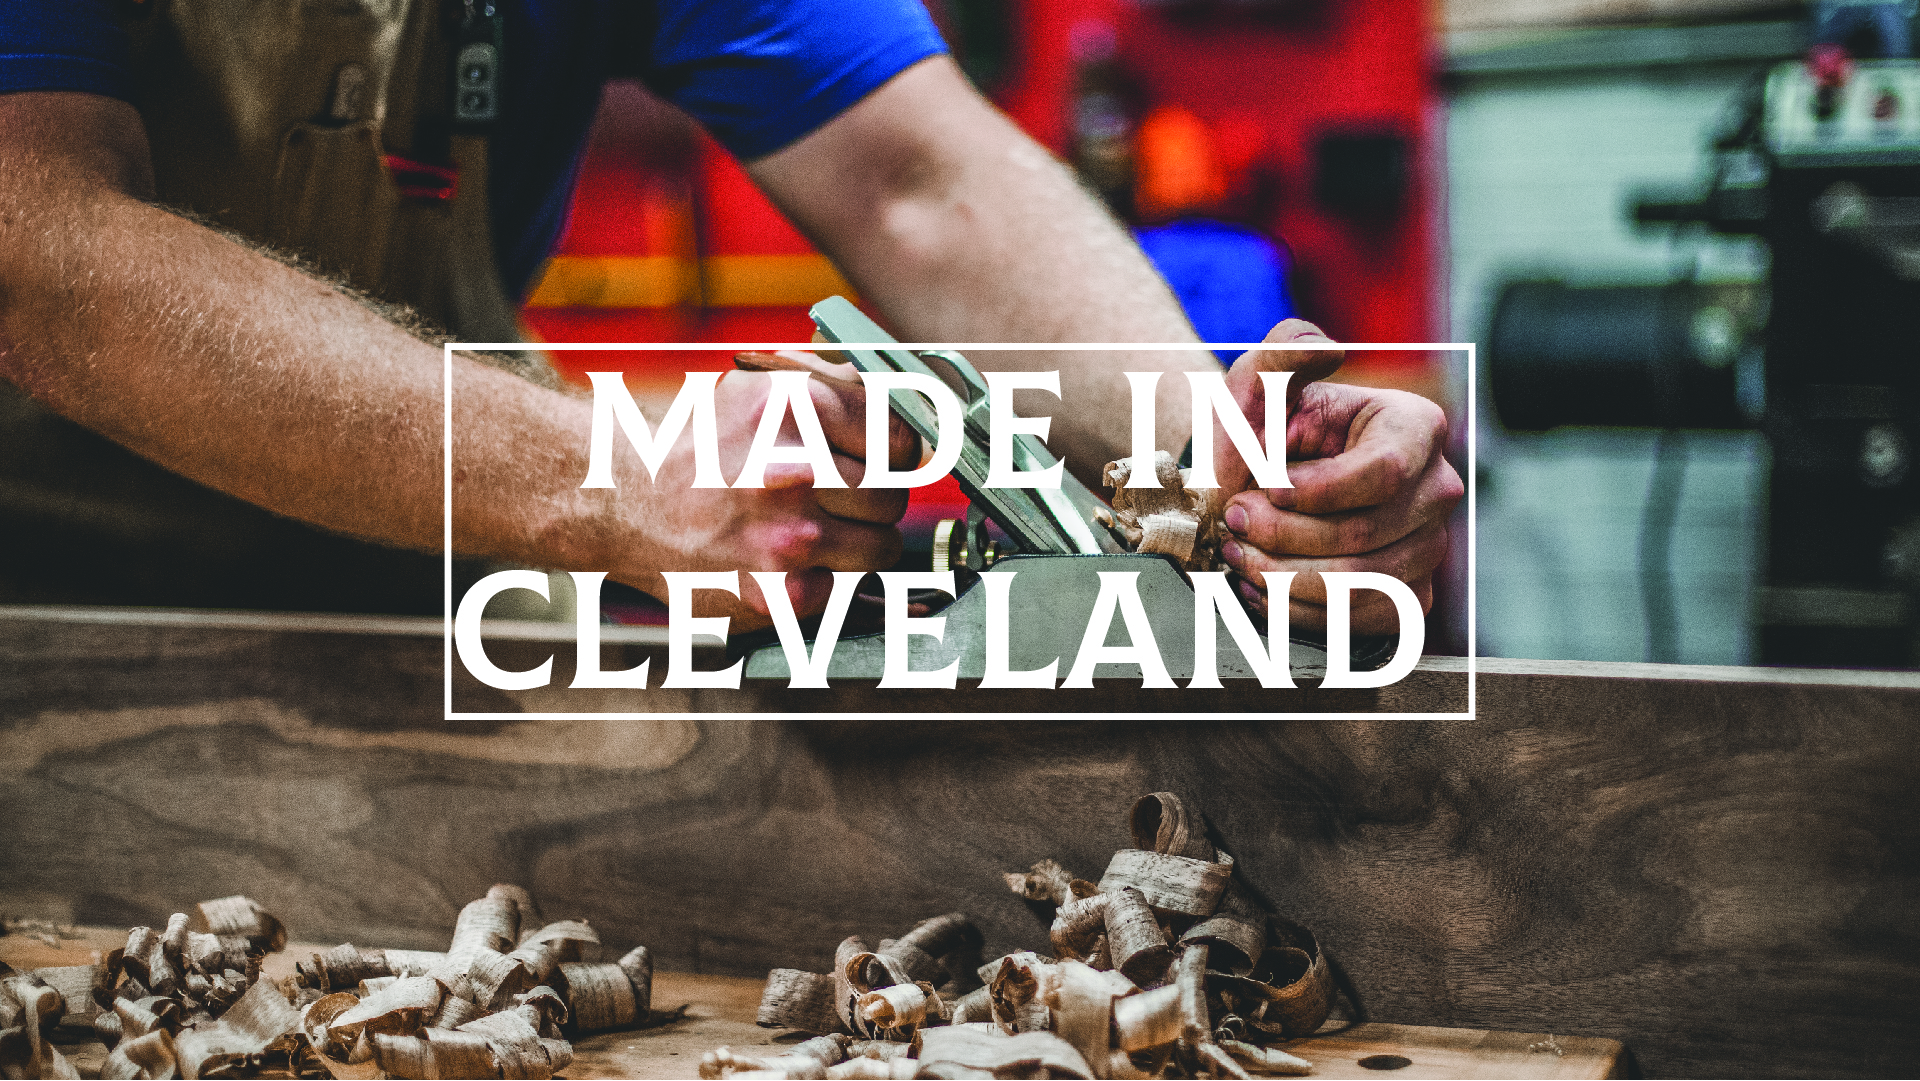 Made in Cleveland Photo.jpg